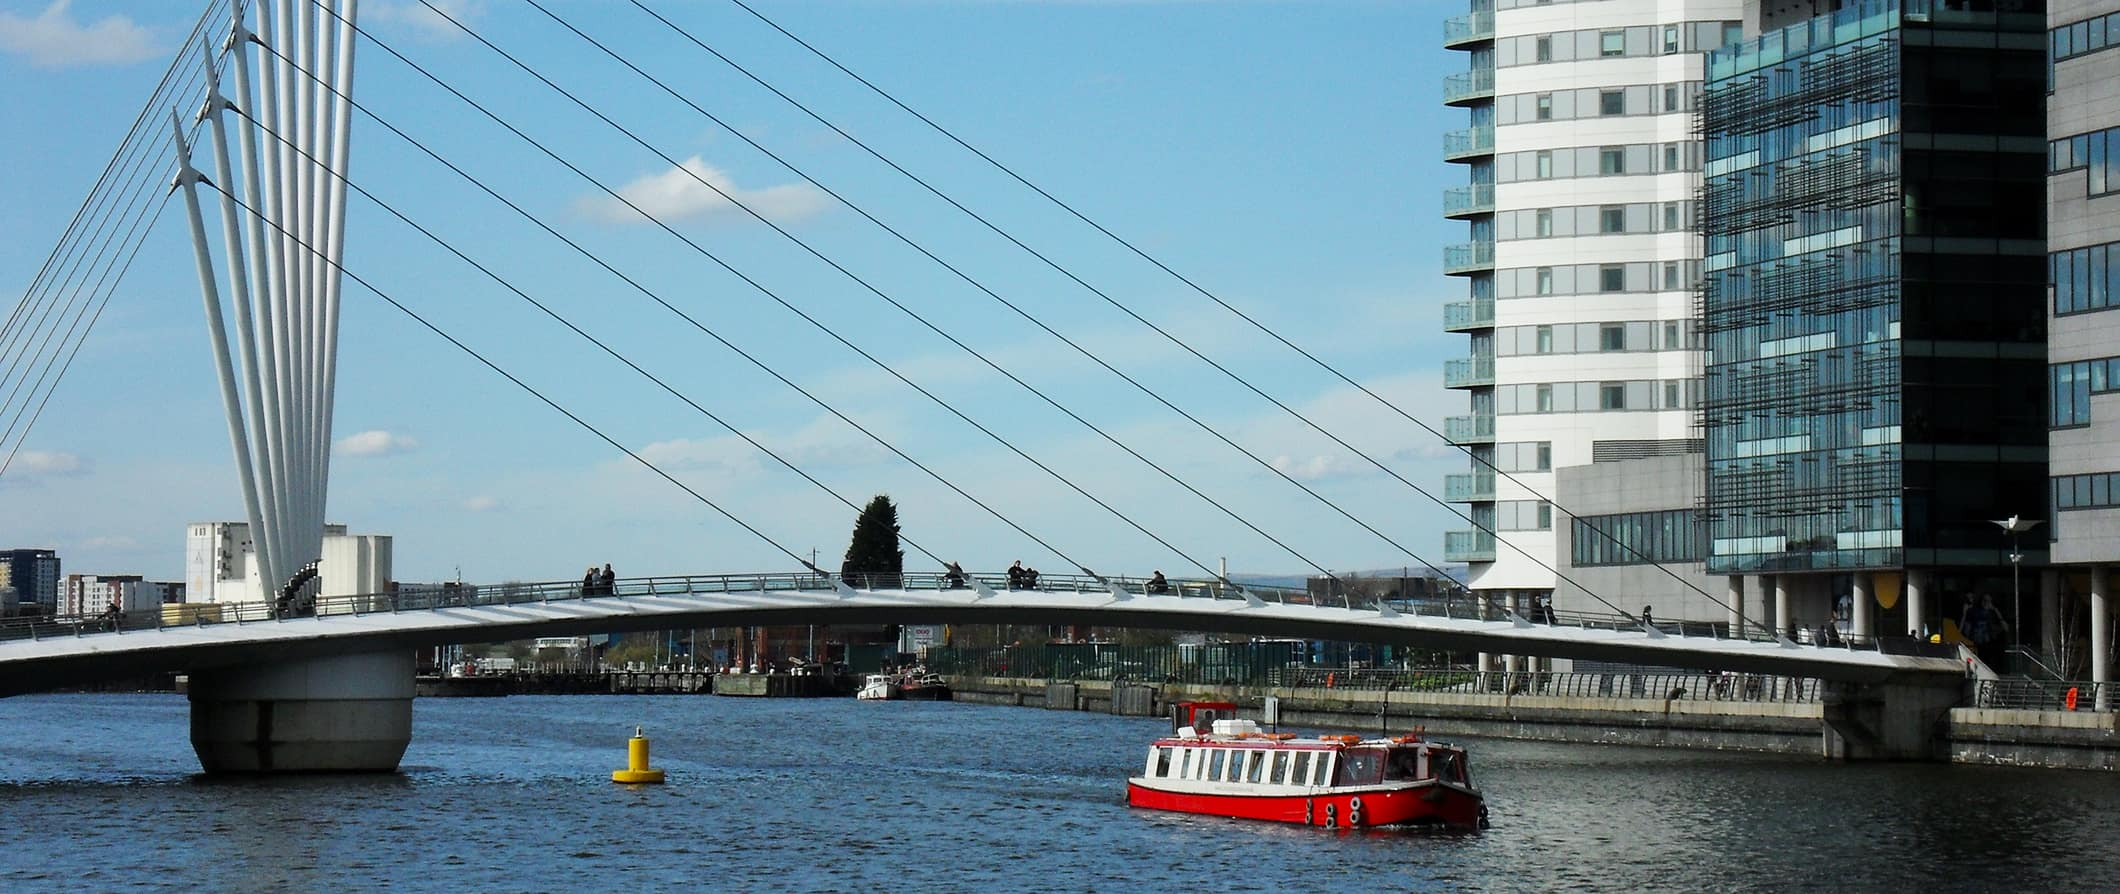 Manchester Bridge view and boat